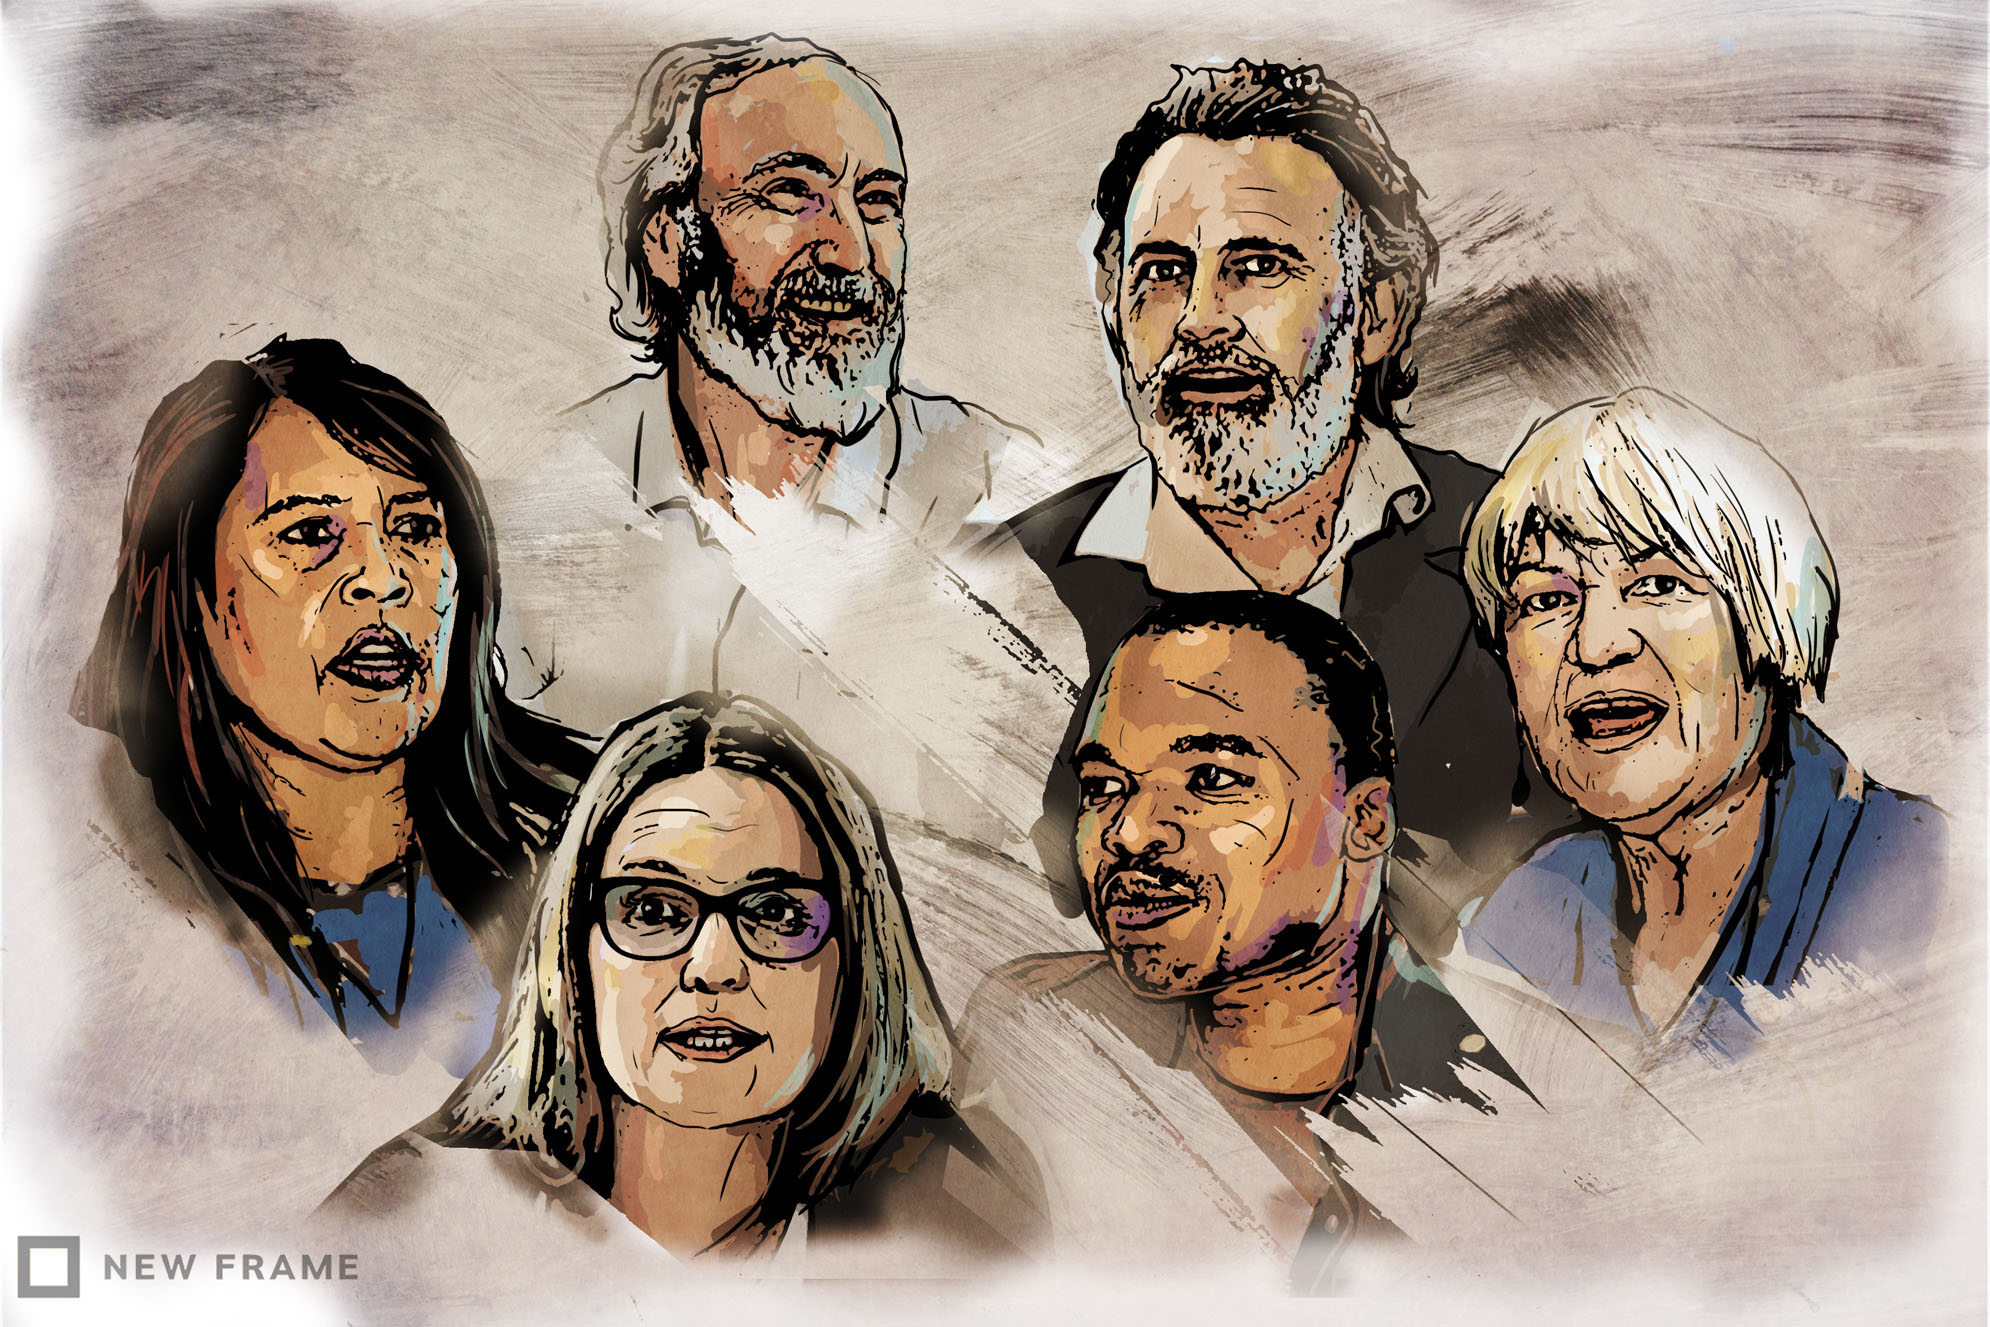 Clockwise from left: Davine Cloete, John Clarke, Cormac Cullinan, Sheila Berry, Mzamo Dlamini and Tracey Davies. (Illustration by Anastasya Eliseeva)